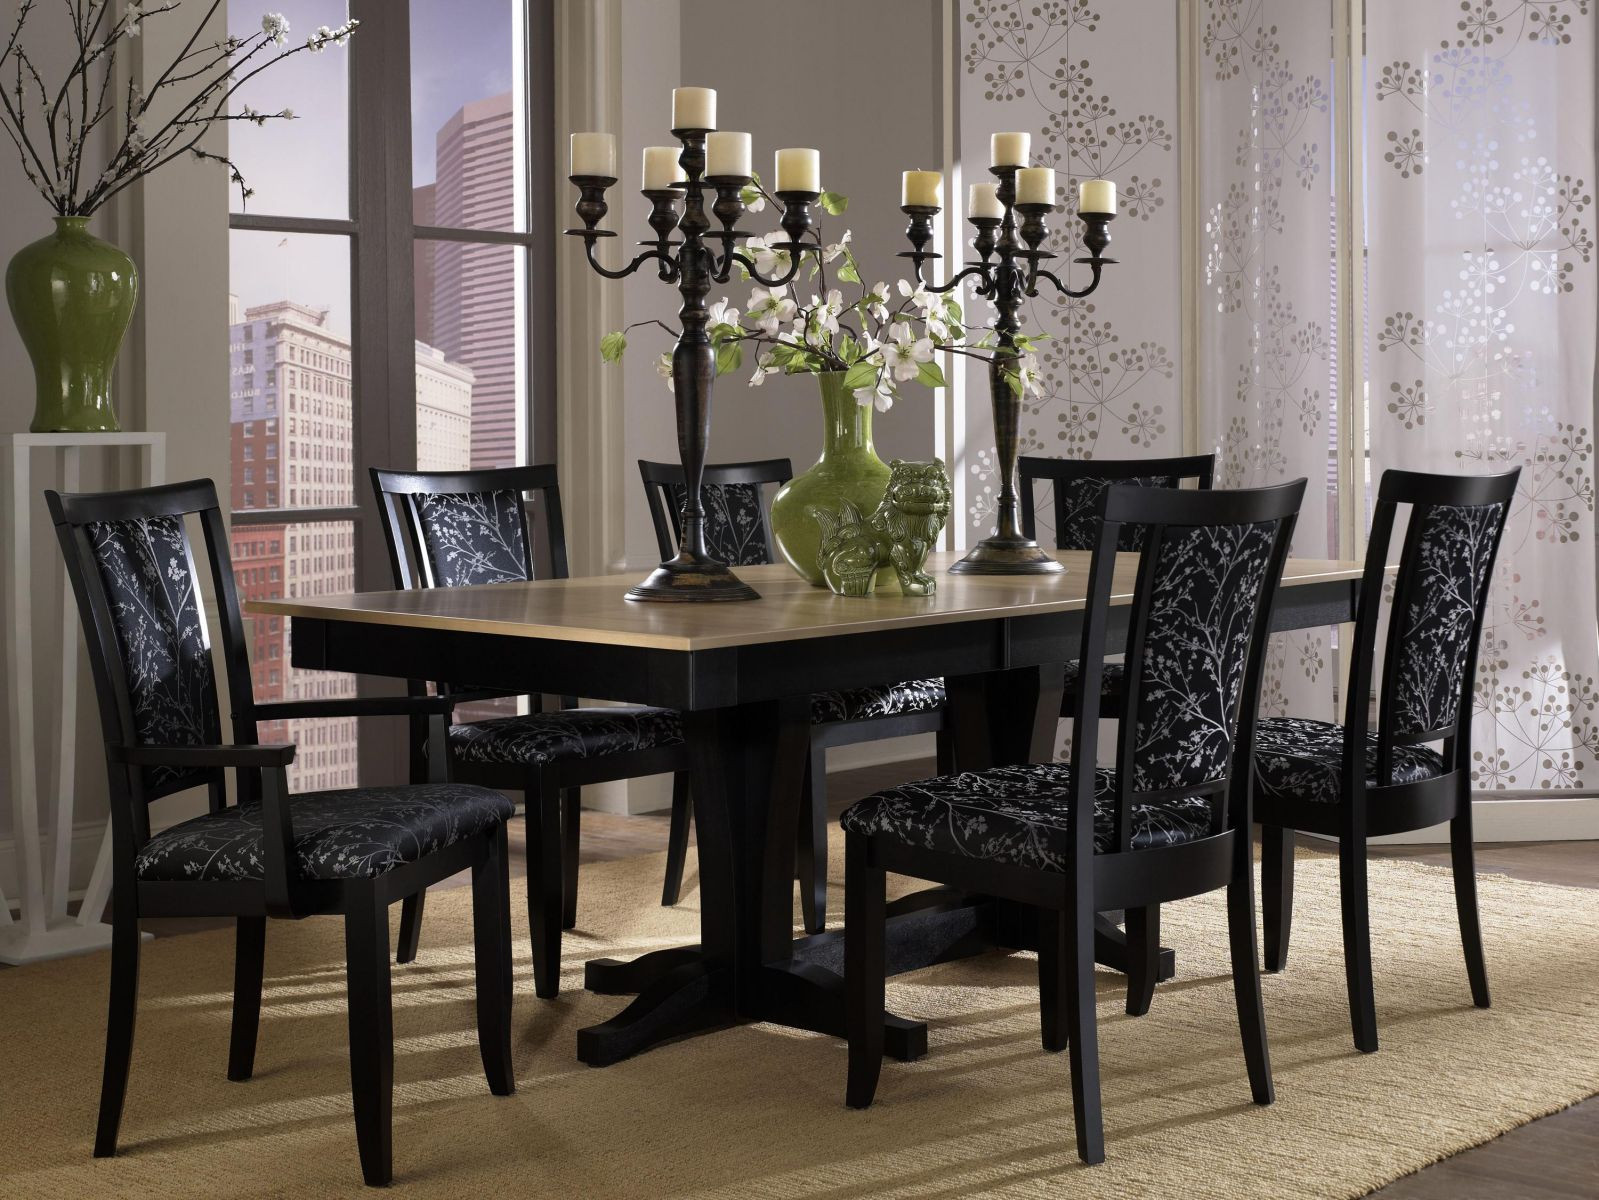 Best ideas about Black Dining Room Chairs . Save or Pin The Design Contemporary Dining Room Sets Amaza Design Now.